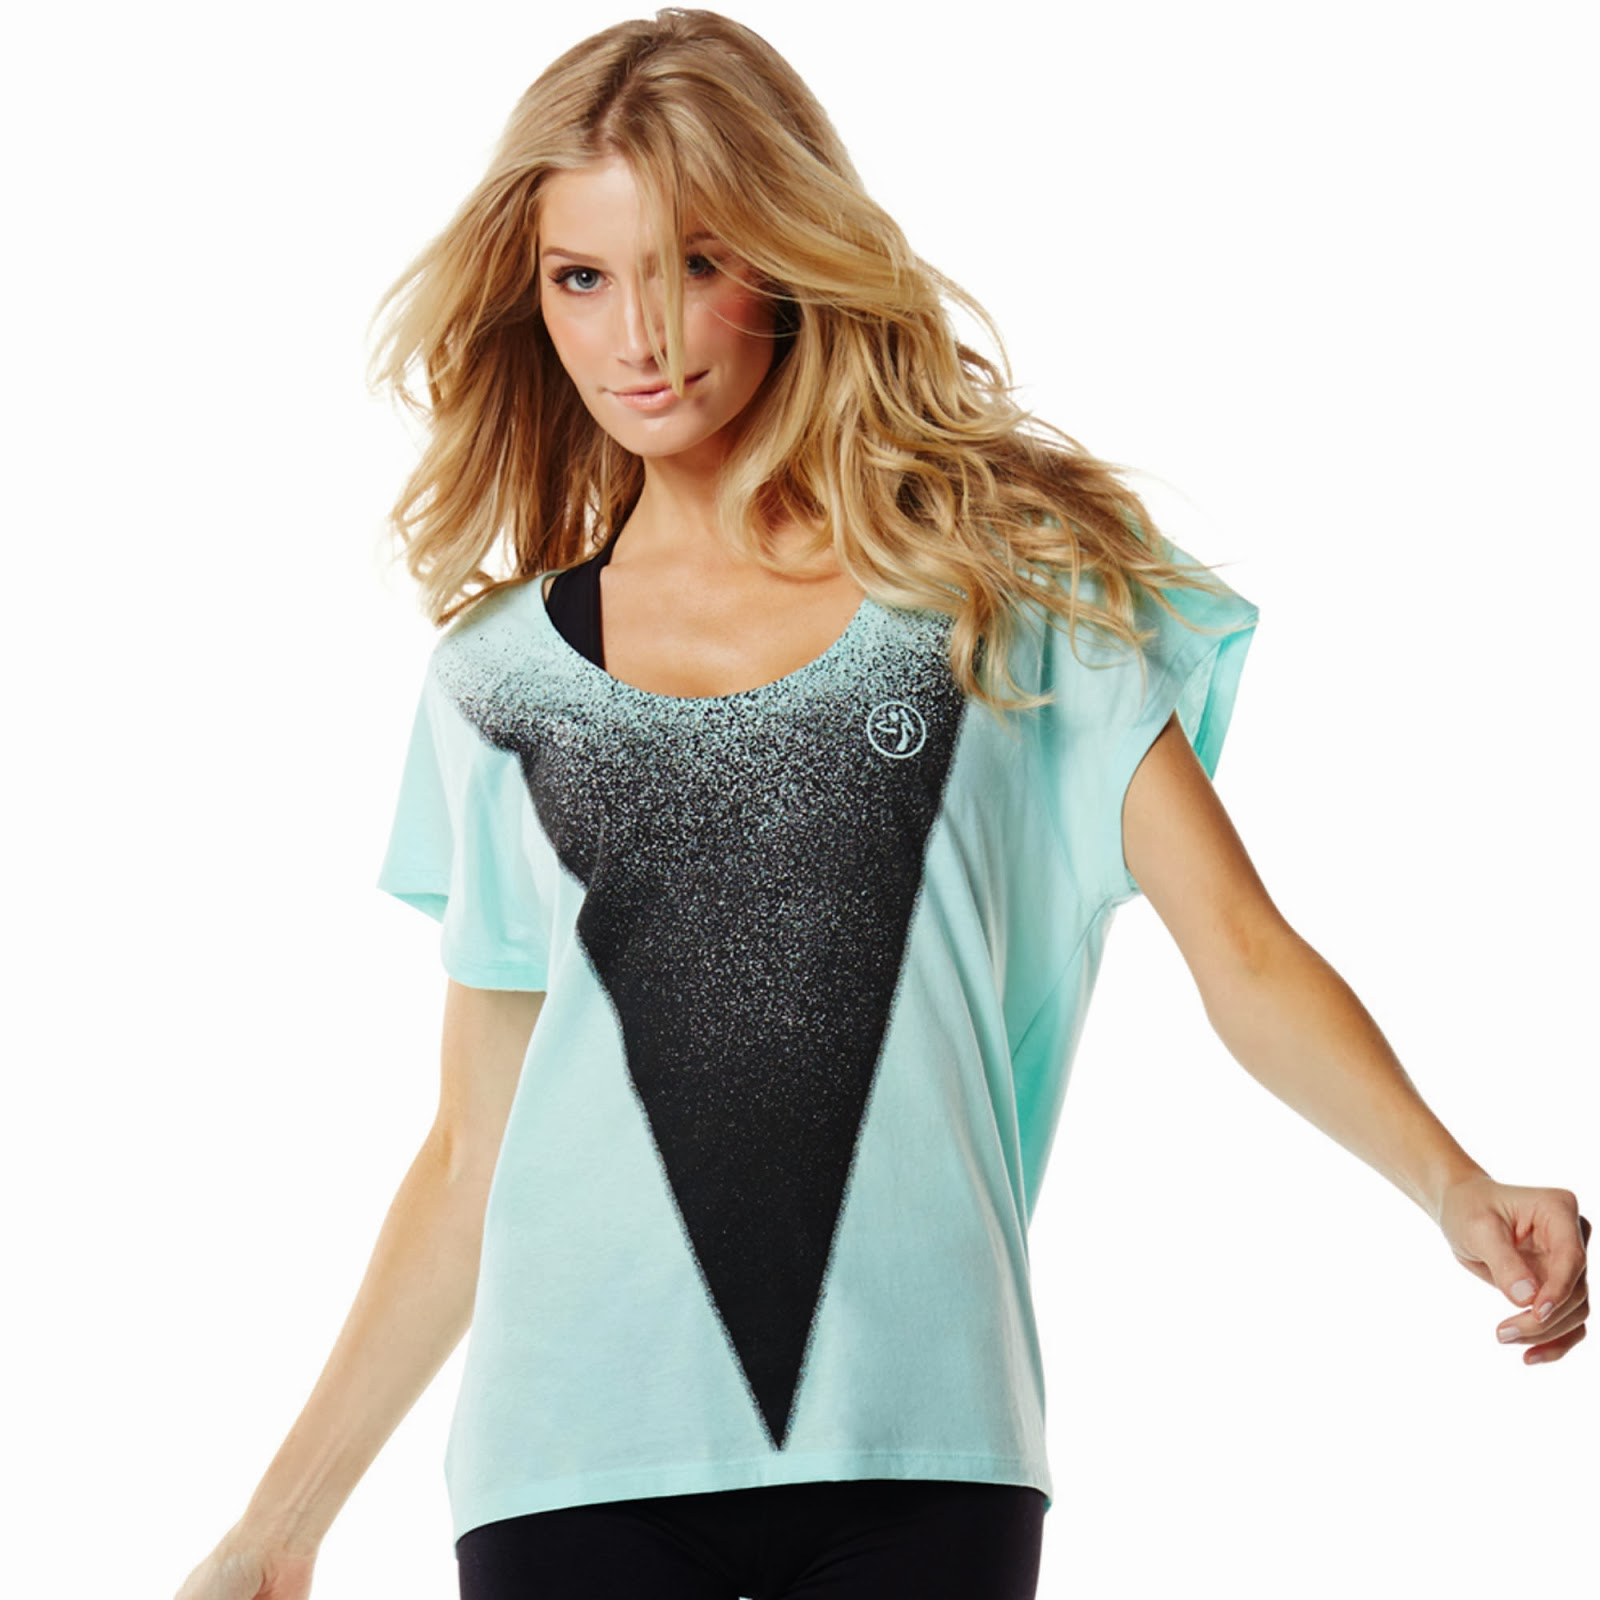 http://www.zumba.com/en-US/store/US/product/pretty-in-print-raglan-tee?color=Smoke